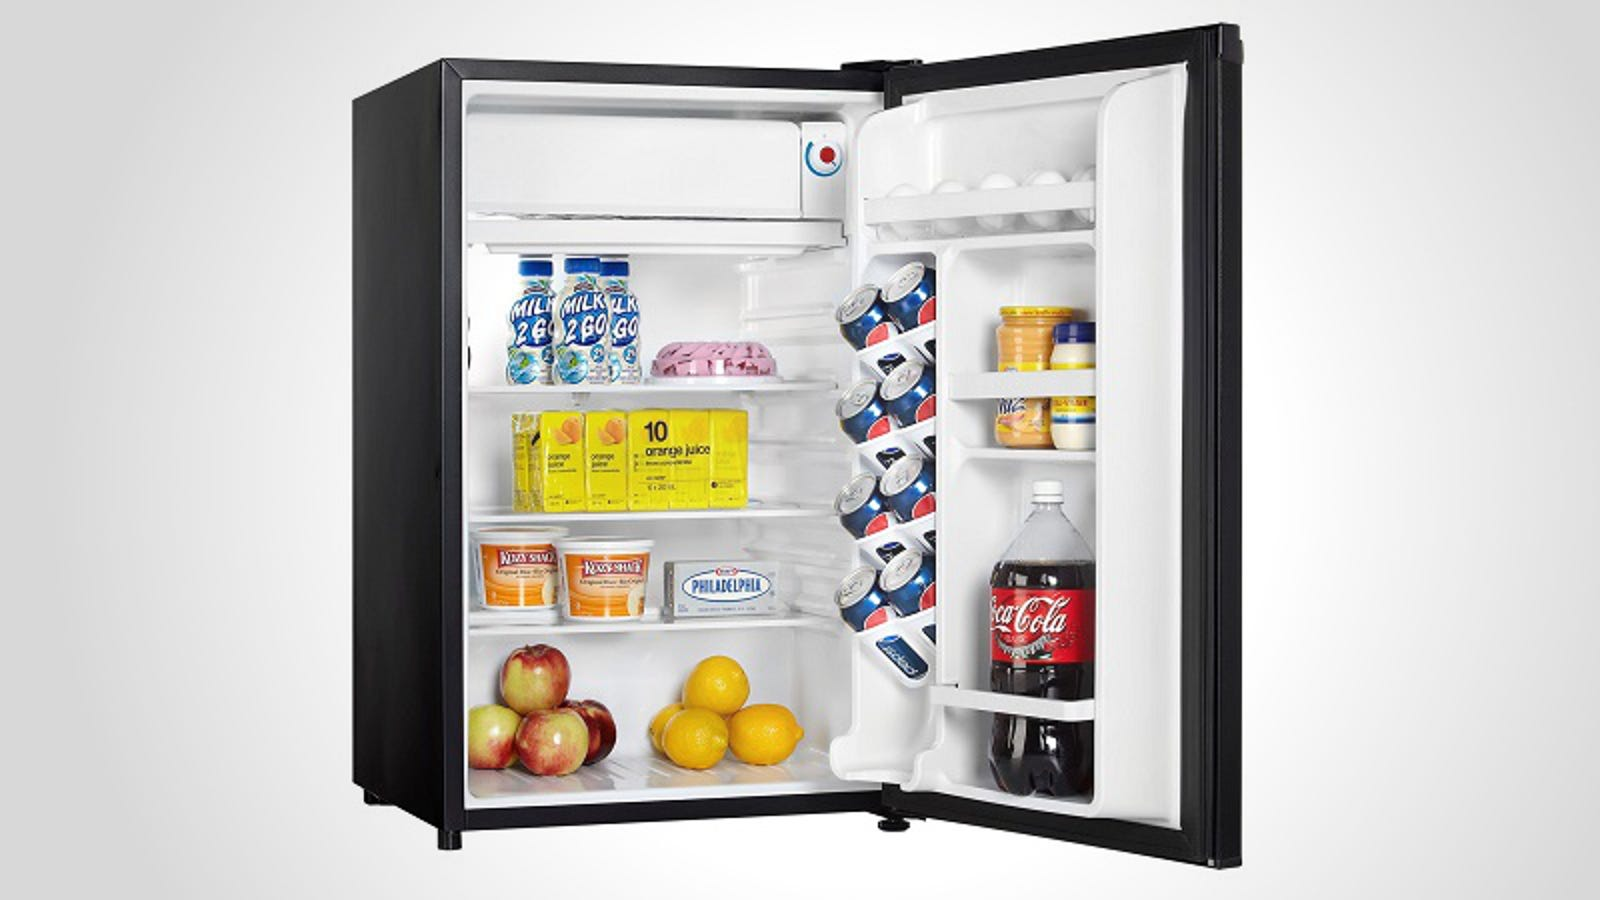 Compact Fridge For Dorm: What To Look For When Picking Out A Mini-Fridge For Your